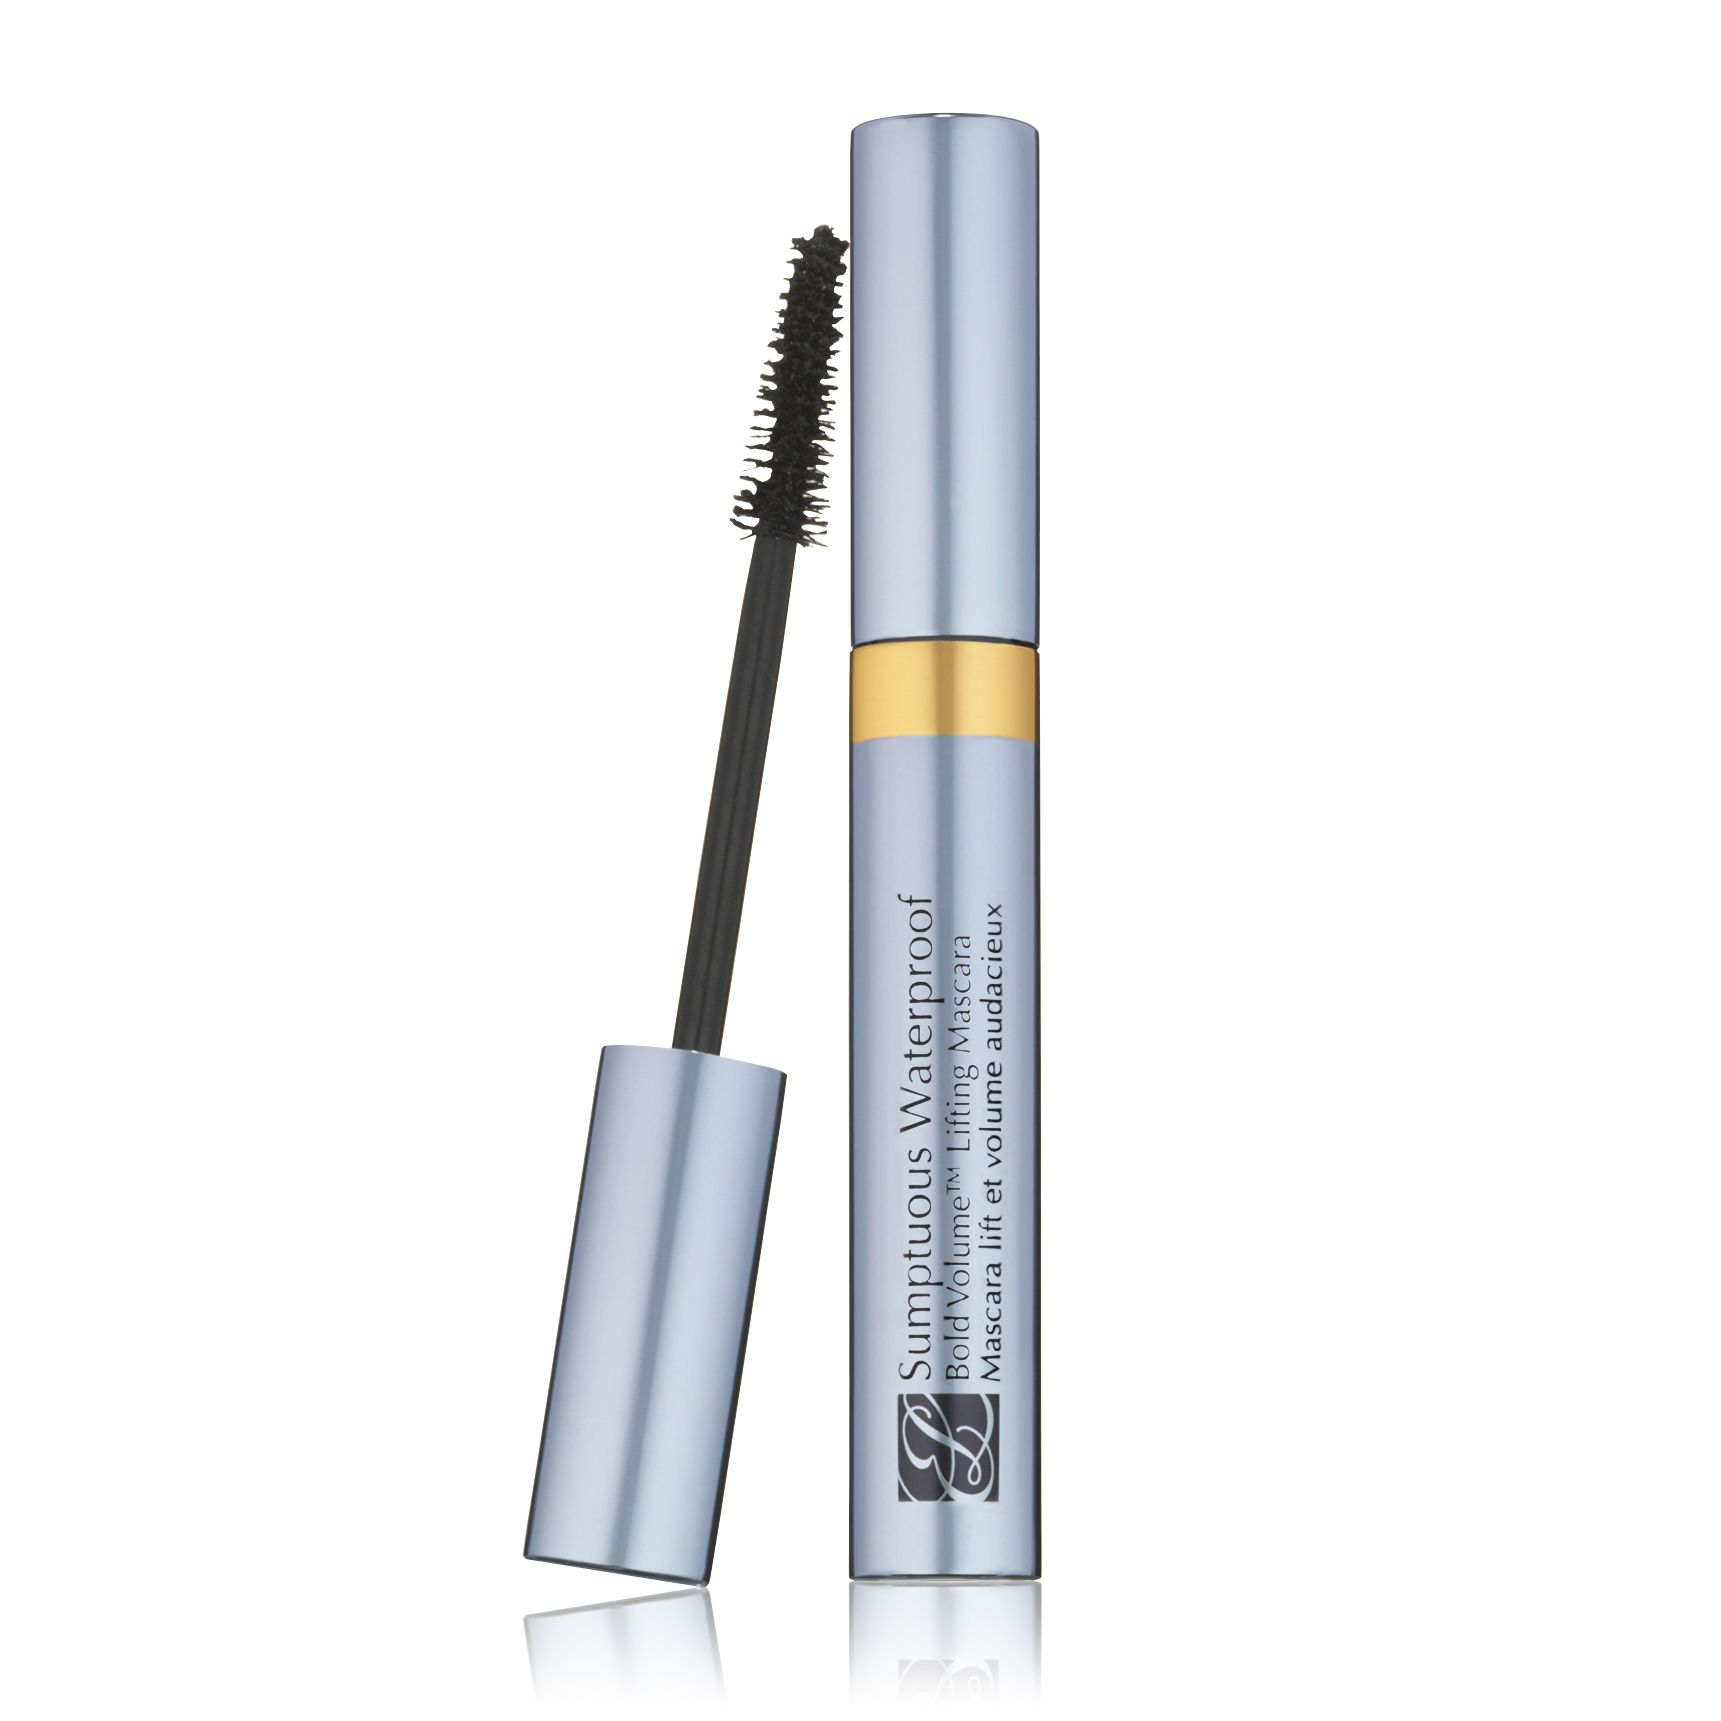 Sumptuous Waterproof Mascara - Black  6ml